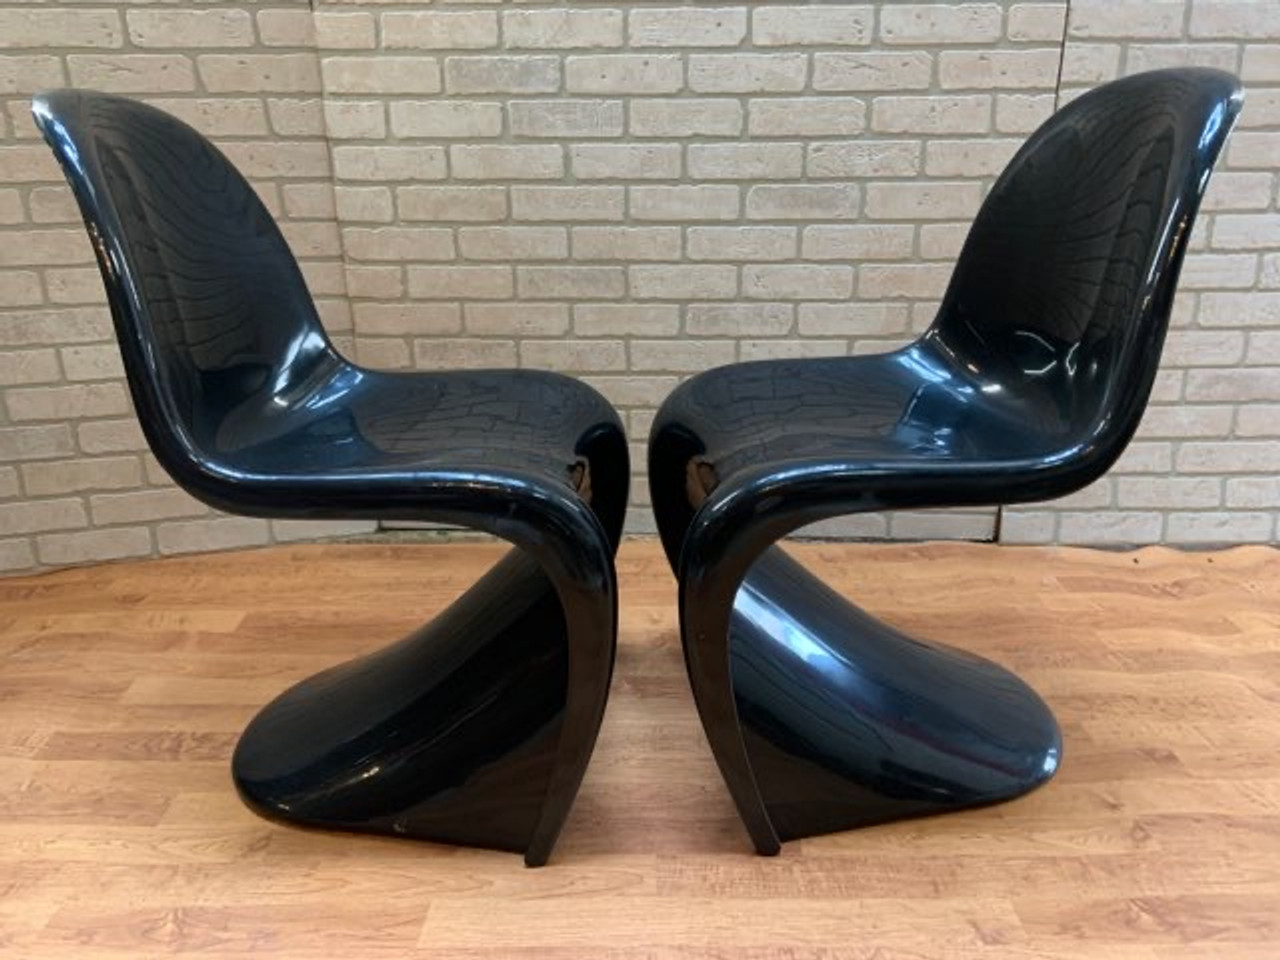 Mid Century Modern S Chairs By Verner Panton For Herman Miller Set Of 2 Vintage Grind House